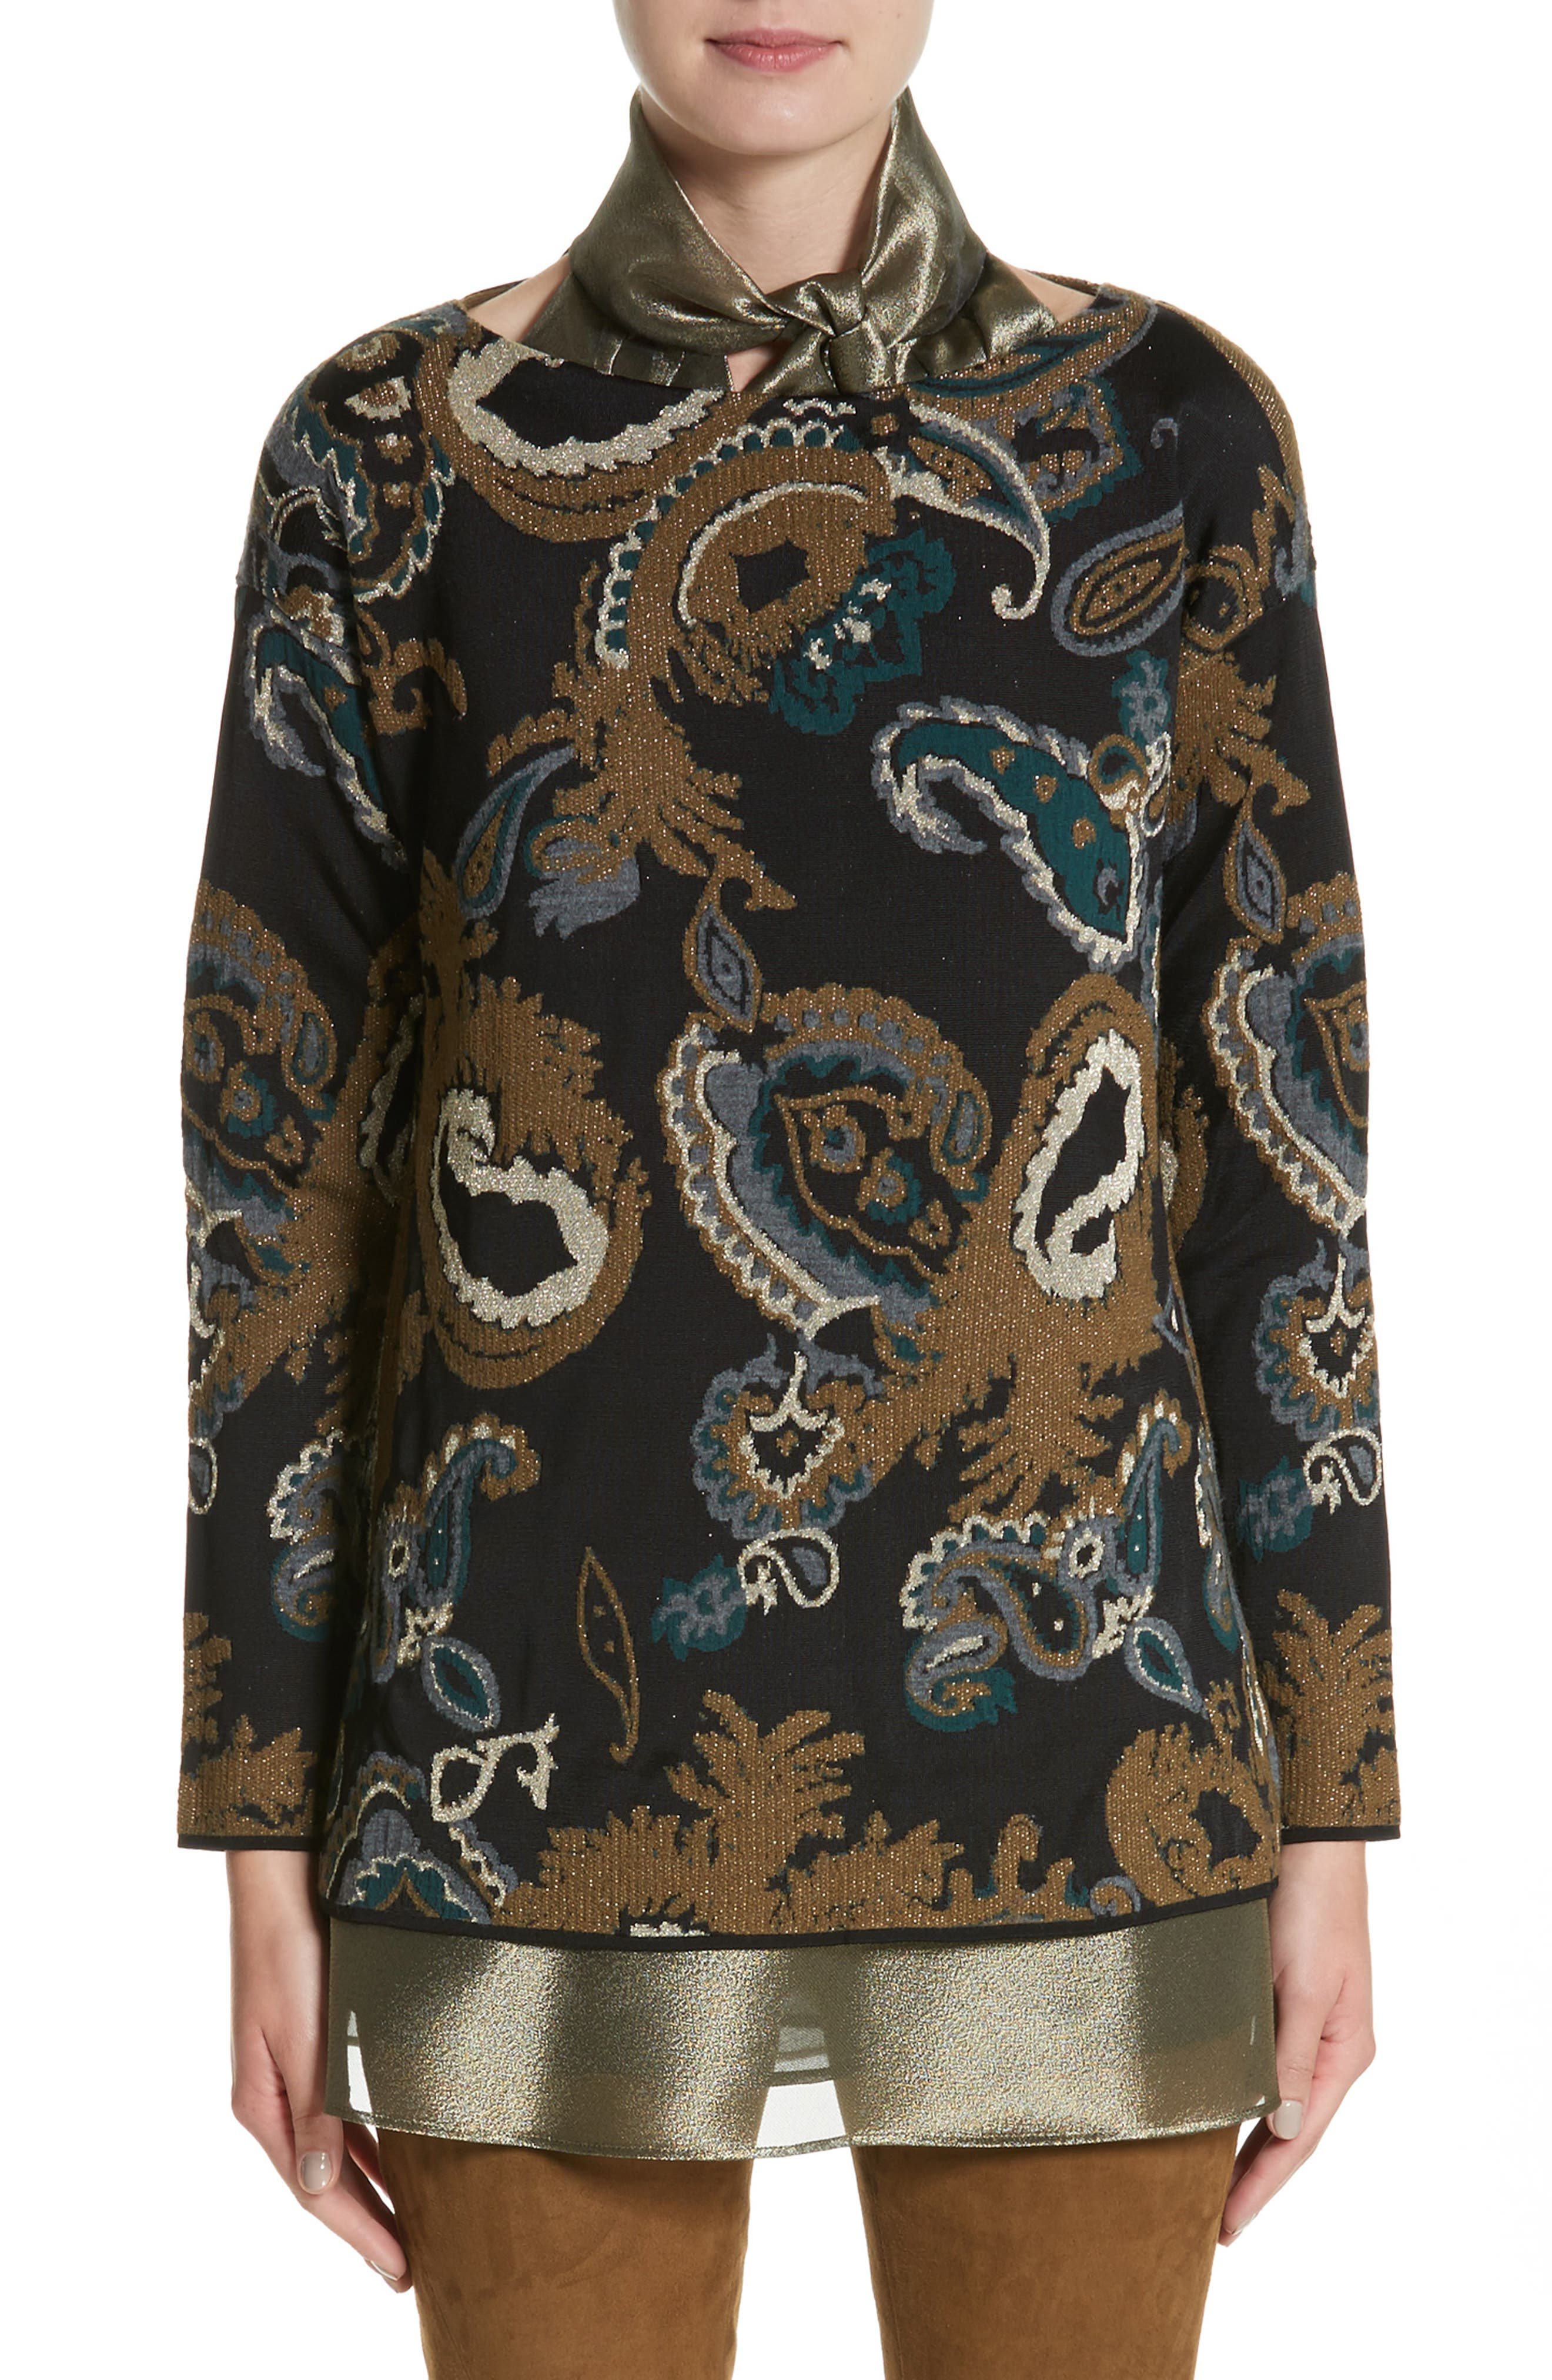 Alternate Image 1 Selected - Lafayette 148 New York Paisley Jacquard Sweater